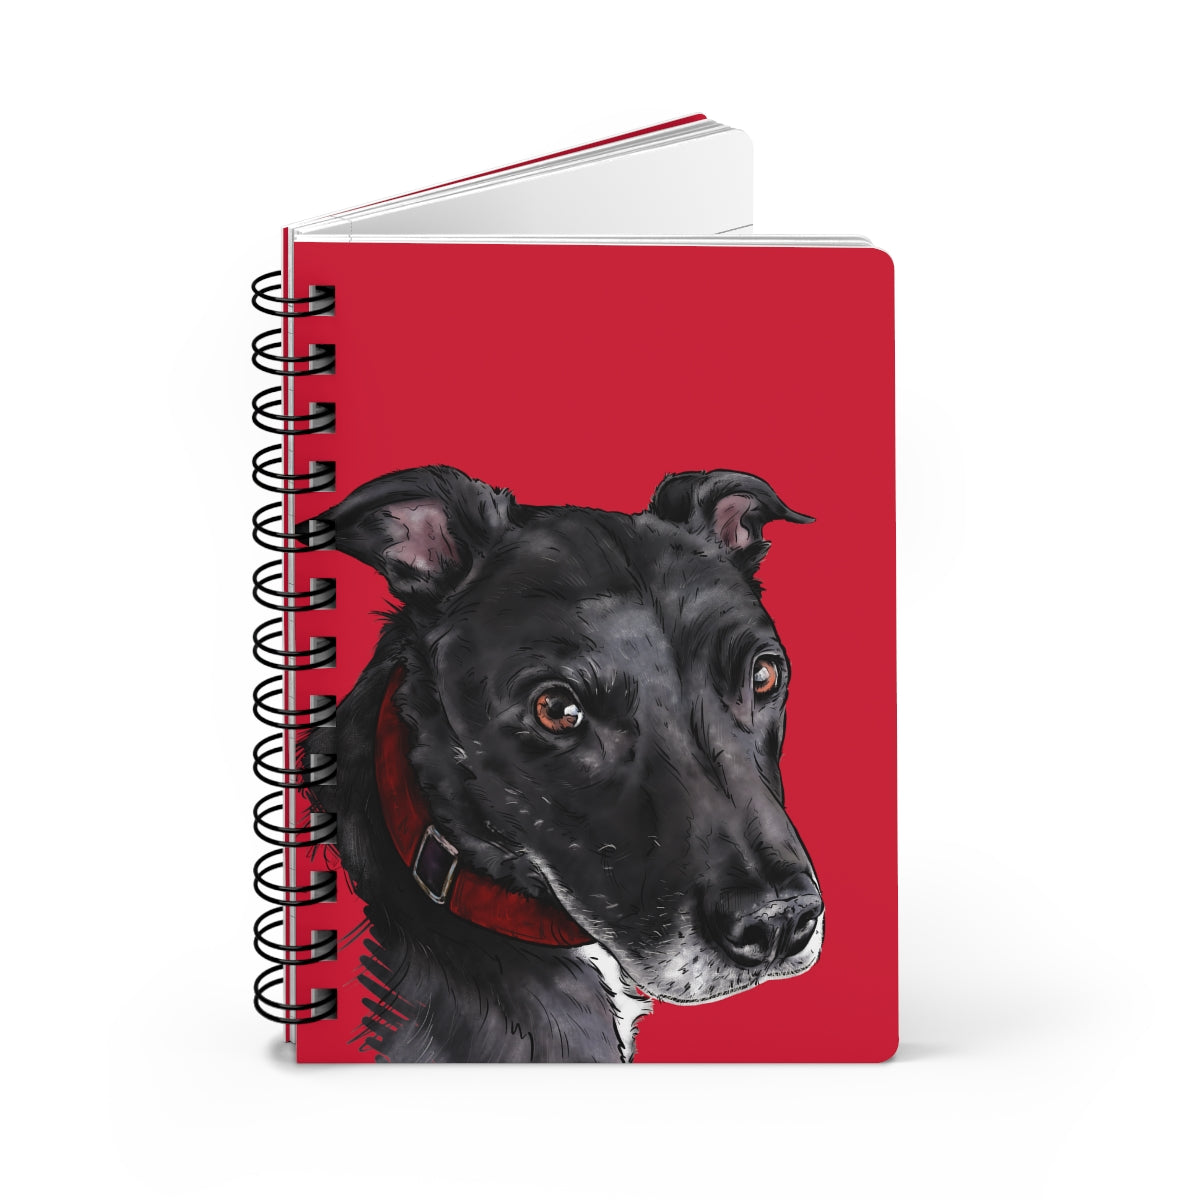 Spiral bound Notebook - Ruled Line (add on)